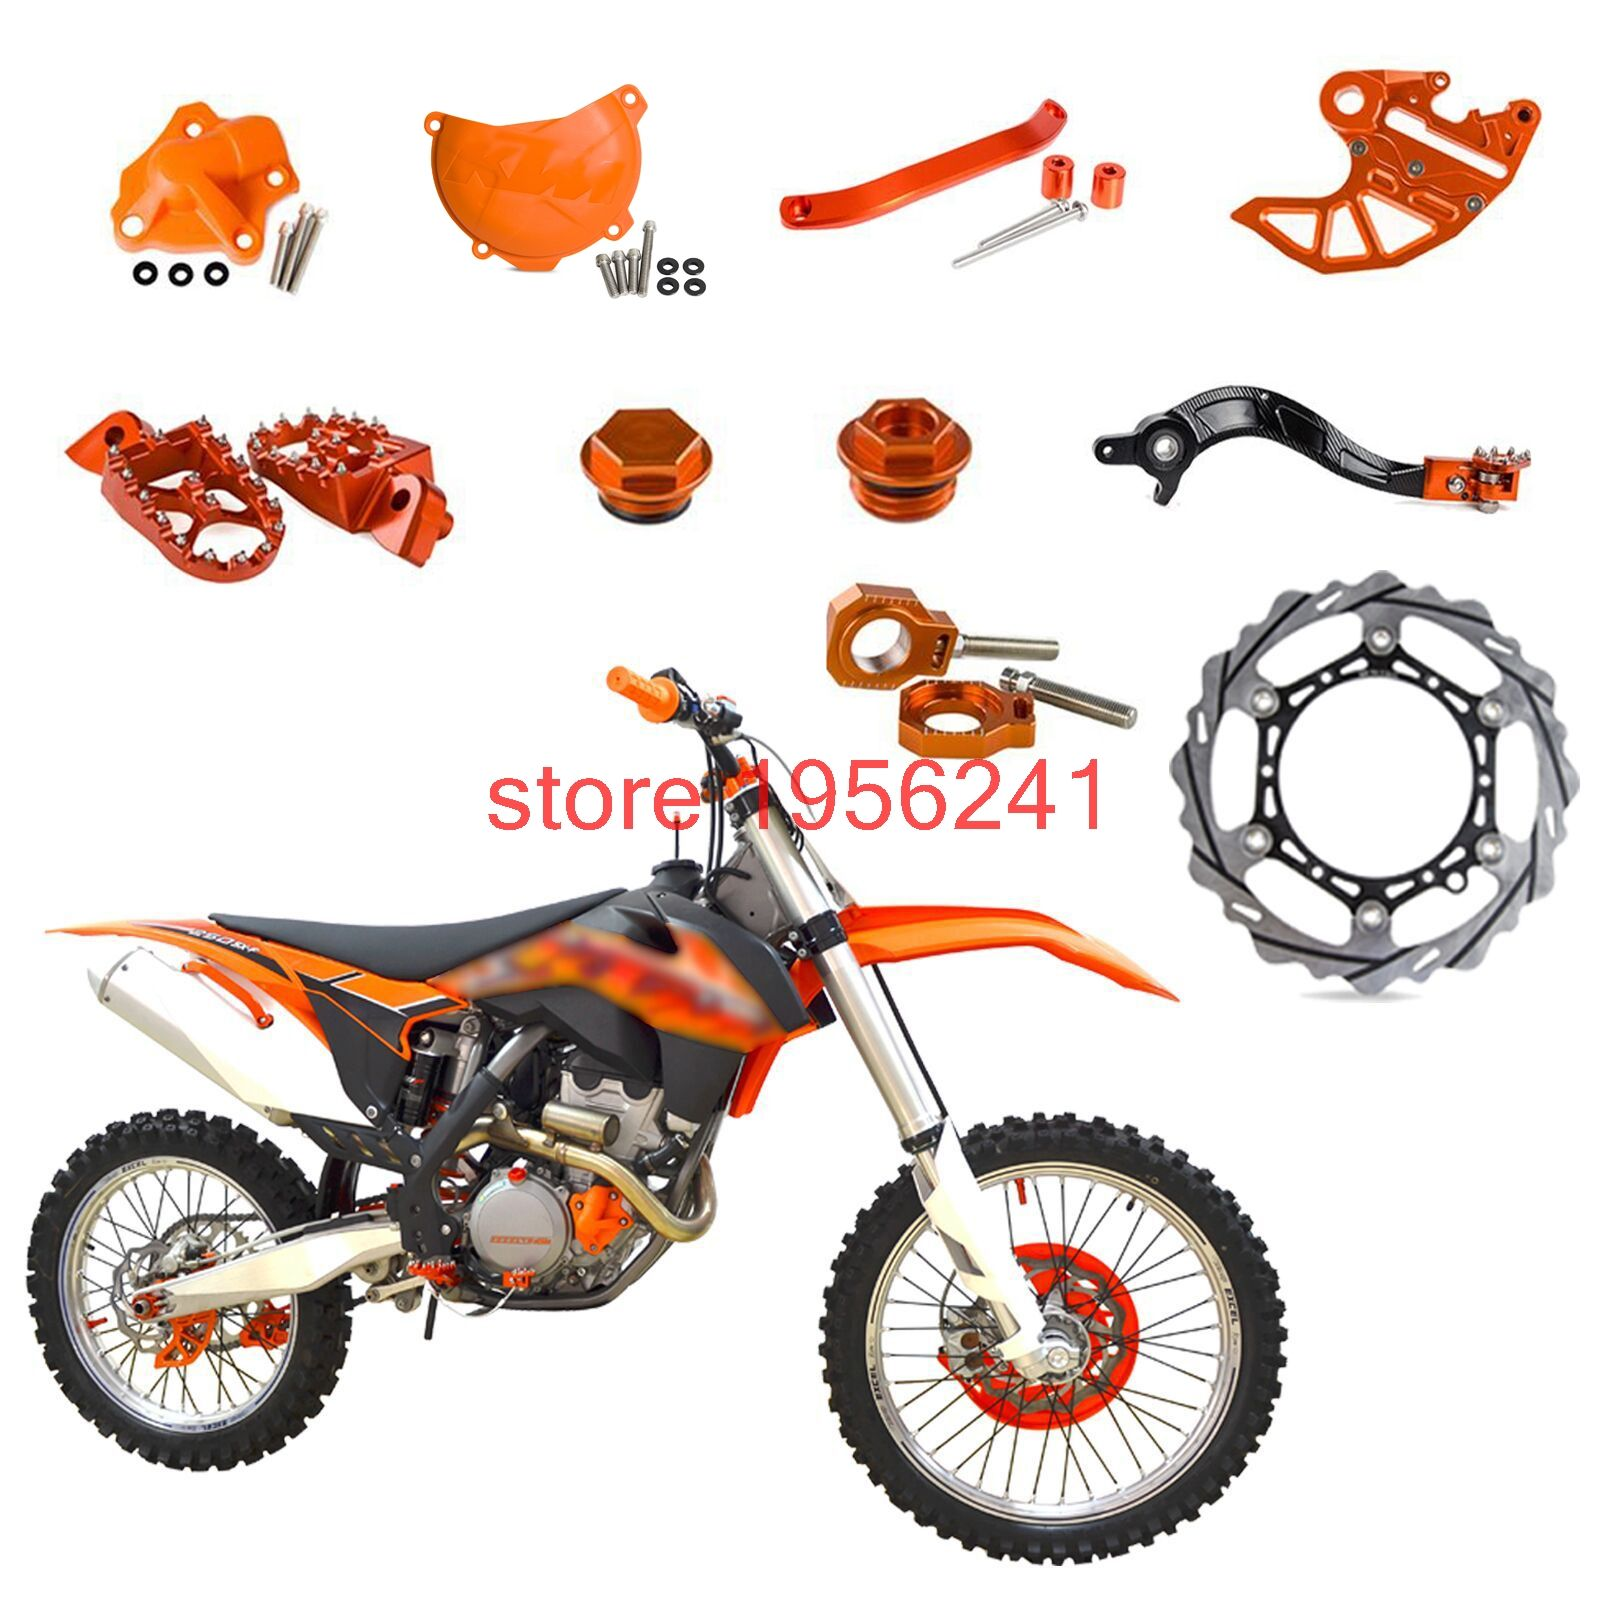 Front Brake Disc Footrest Water Pump Cover Rear Brake Pedal Lever Other For Ktm 250 Sxf Sx F Exc F Xcf Xc F Xcf W Ktm 250 Ktm 250 Exc Ktm